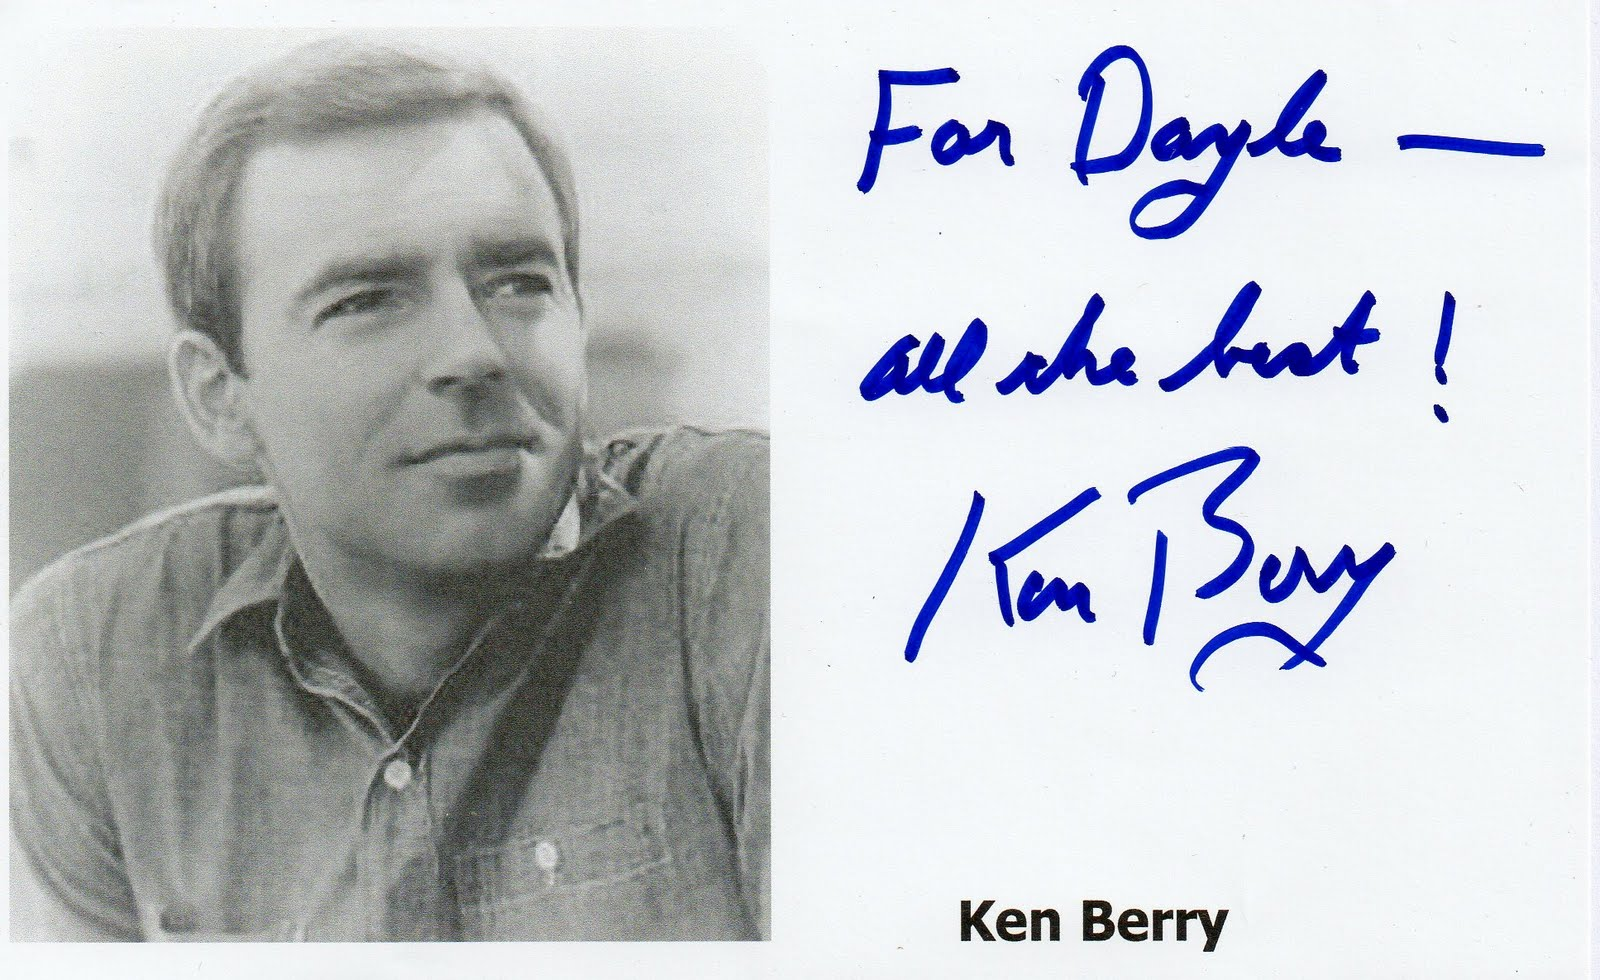 Ken Berry Wallpapers Ken Berry Photos Actor Ken Berry F Troop Mayberry R F D shown